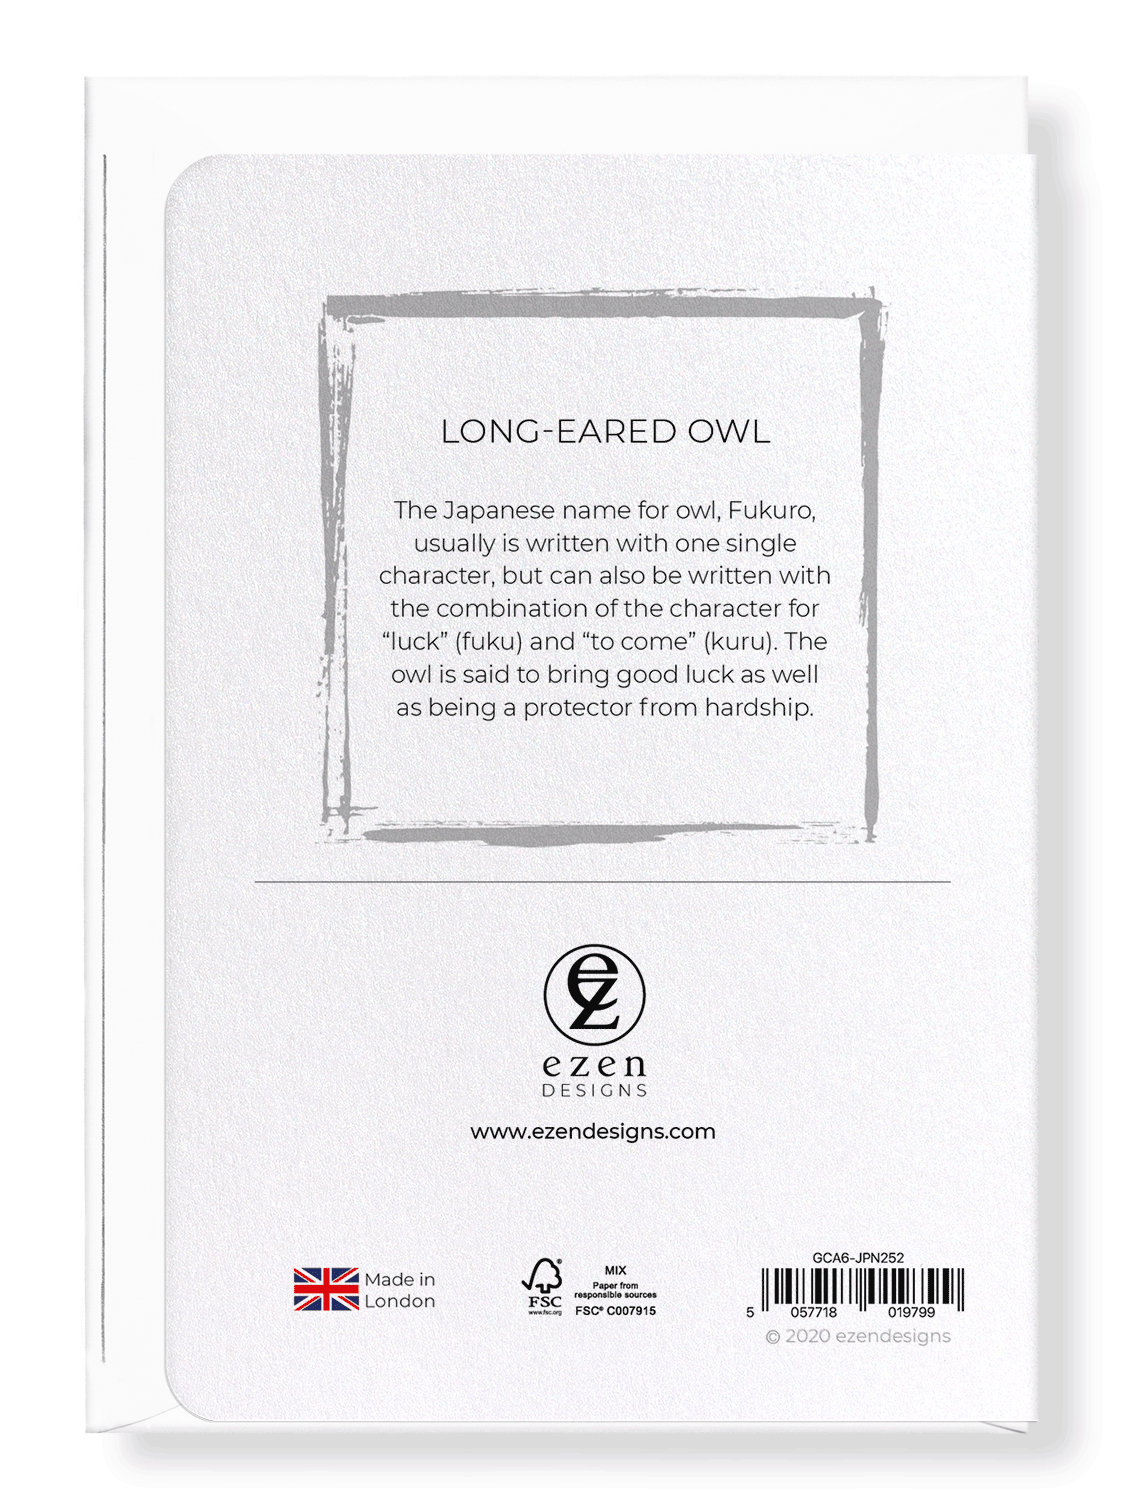 Ezen Designs - Long-eared owl - Greeting Card - Back